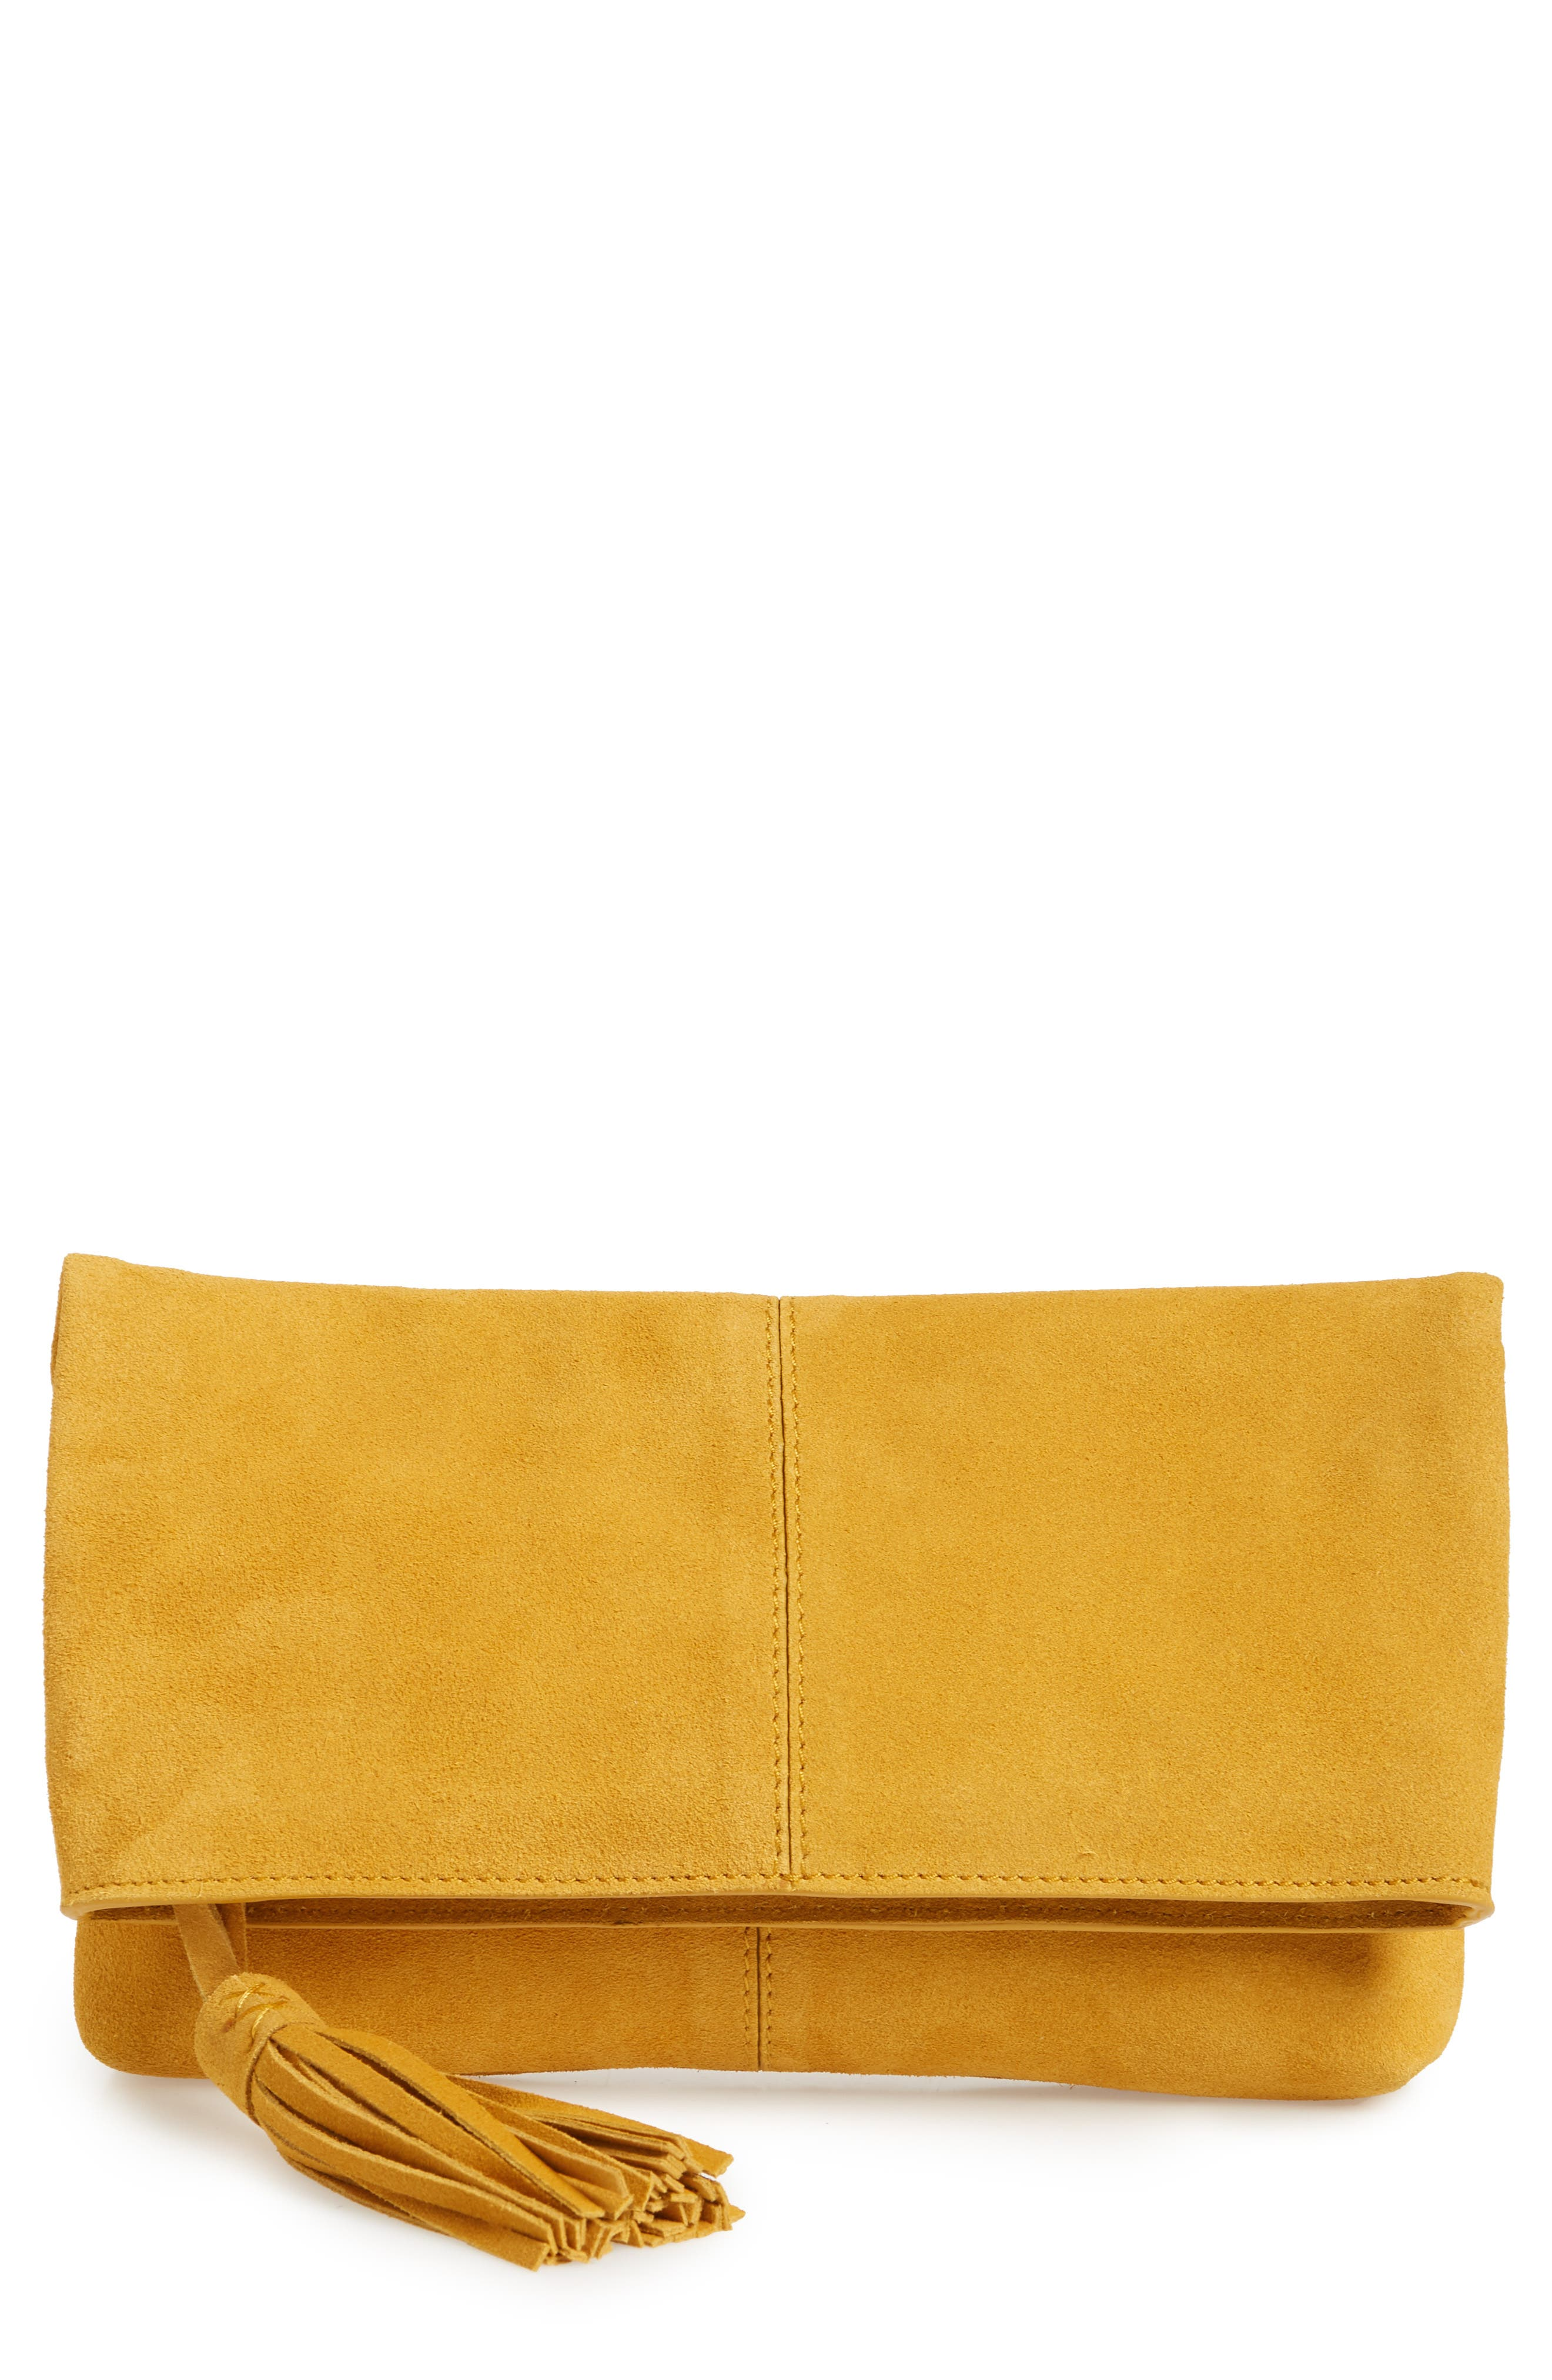 Suede Clutch,                             Main thumbnail 1, color,                             Mustard